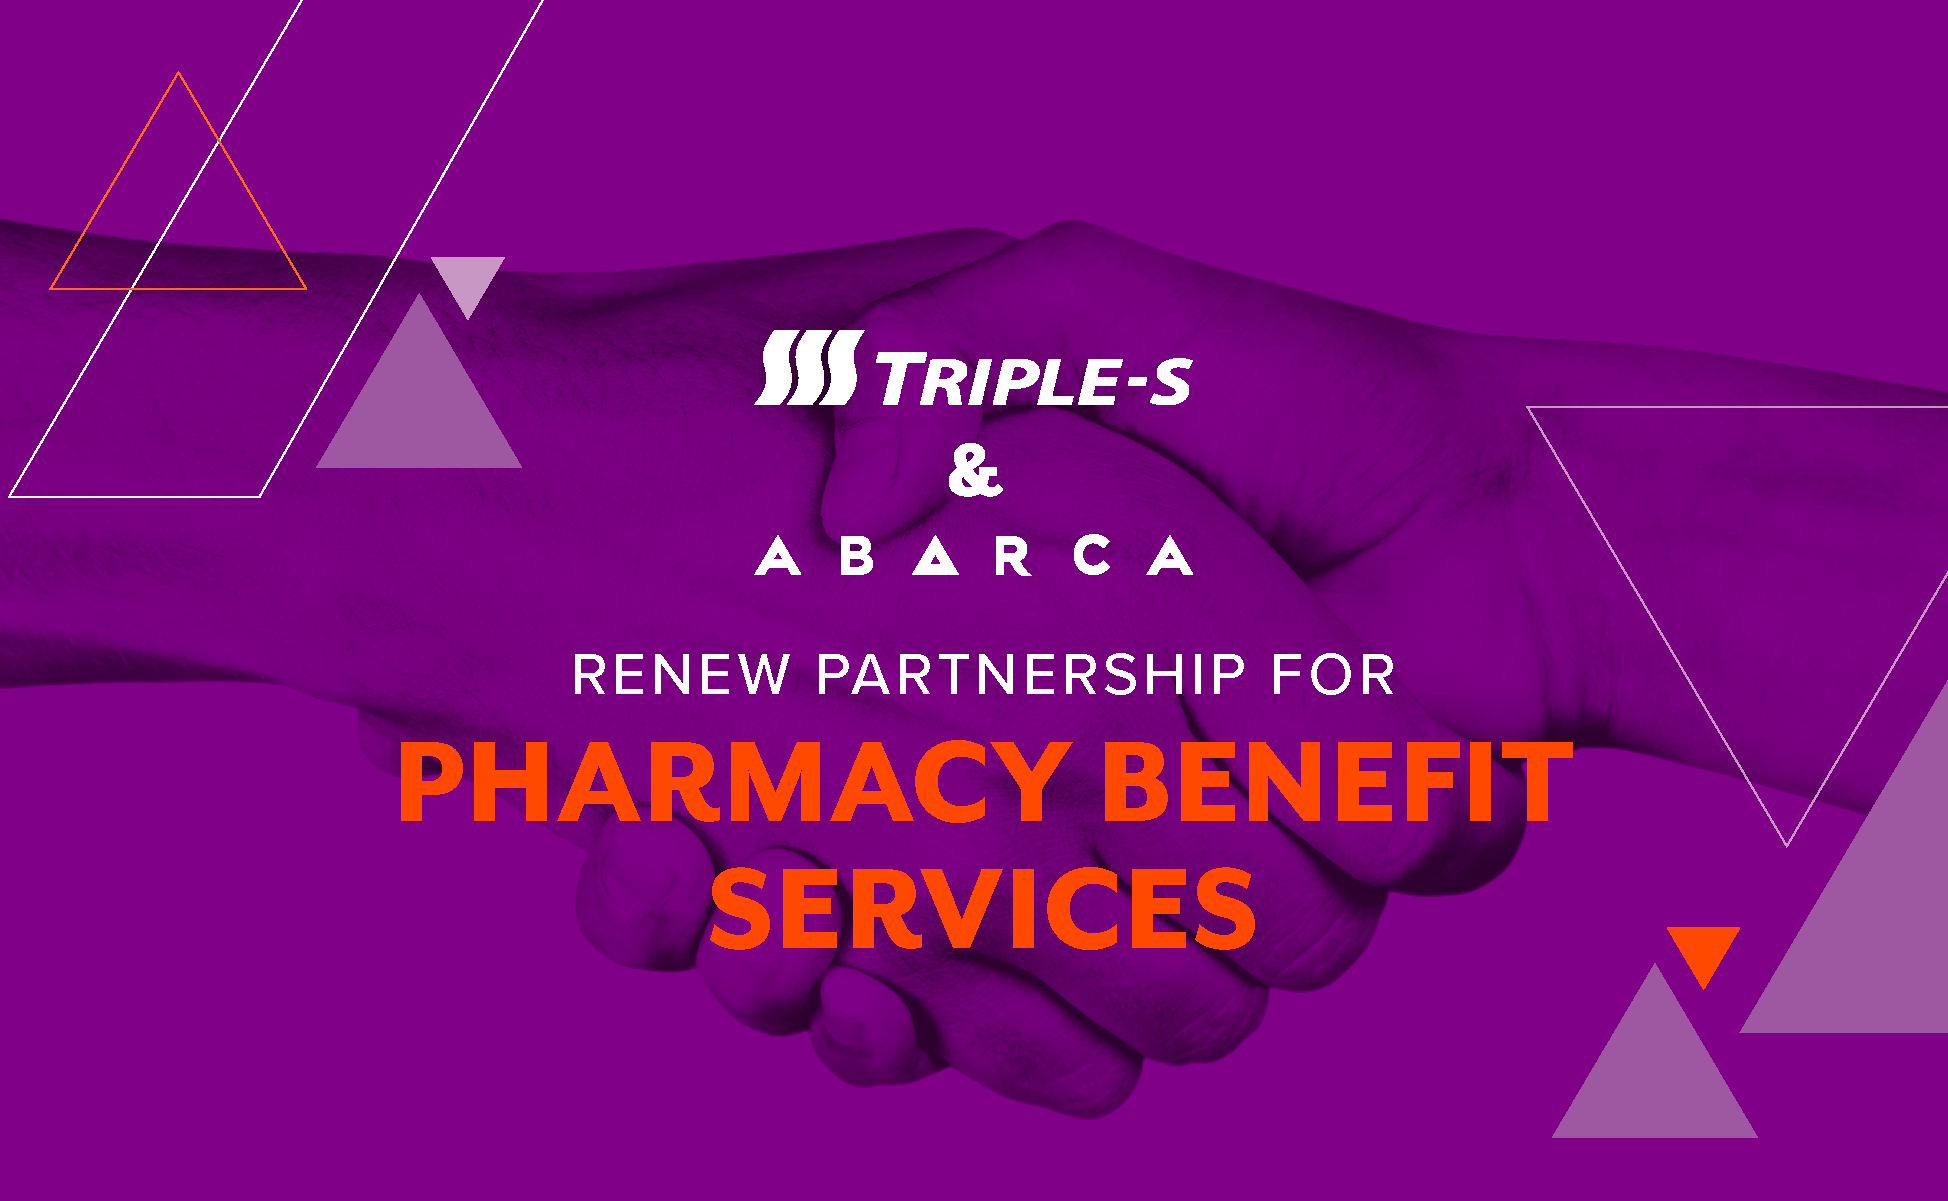 Triple-S and Abarca renew, expand partnership for pharmacy benefit services